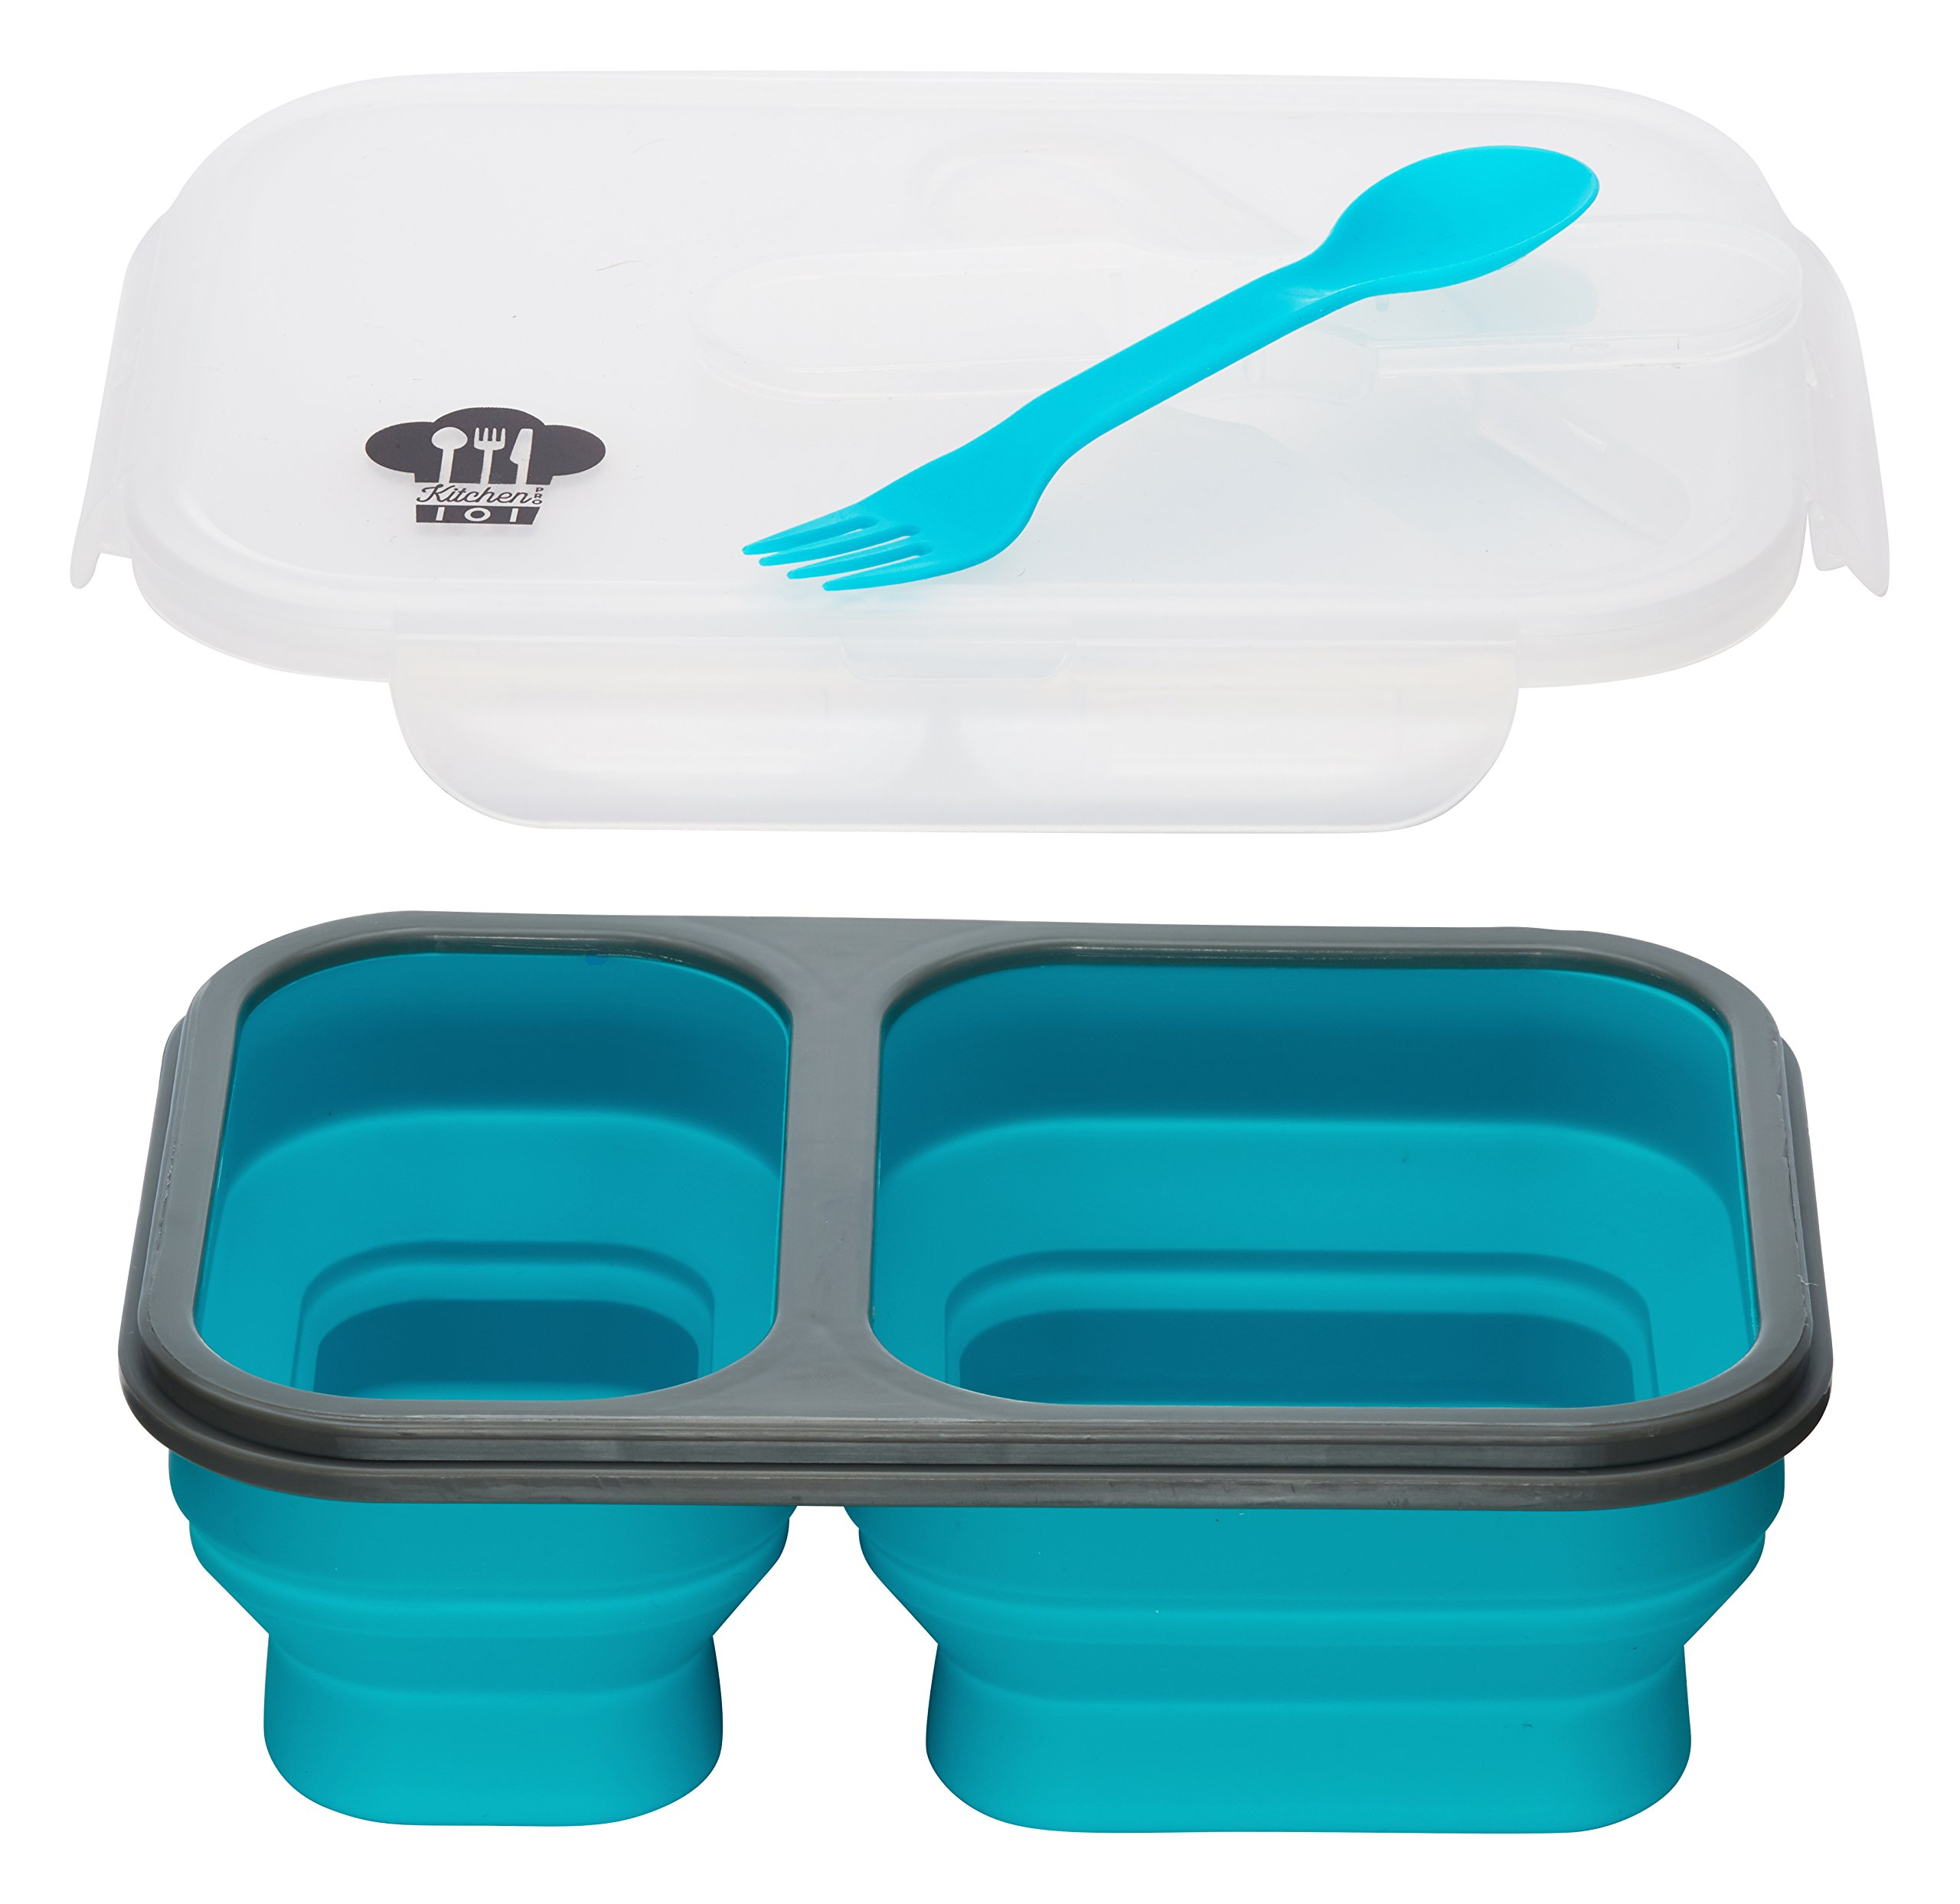 Kitchen Pro 101 Expandable & Collapsible Bento Box Silicone Container Children/Adult Lunch Box, 2 Compartments (Blue) As Seen On TV